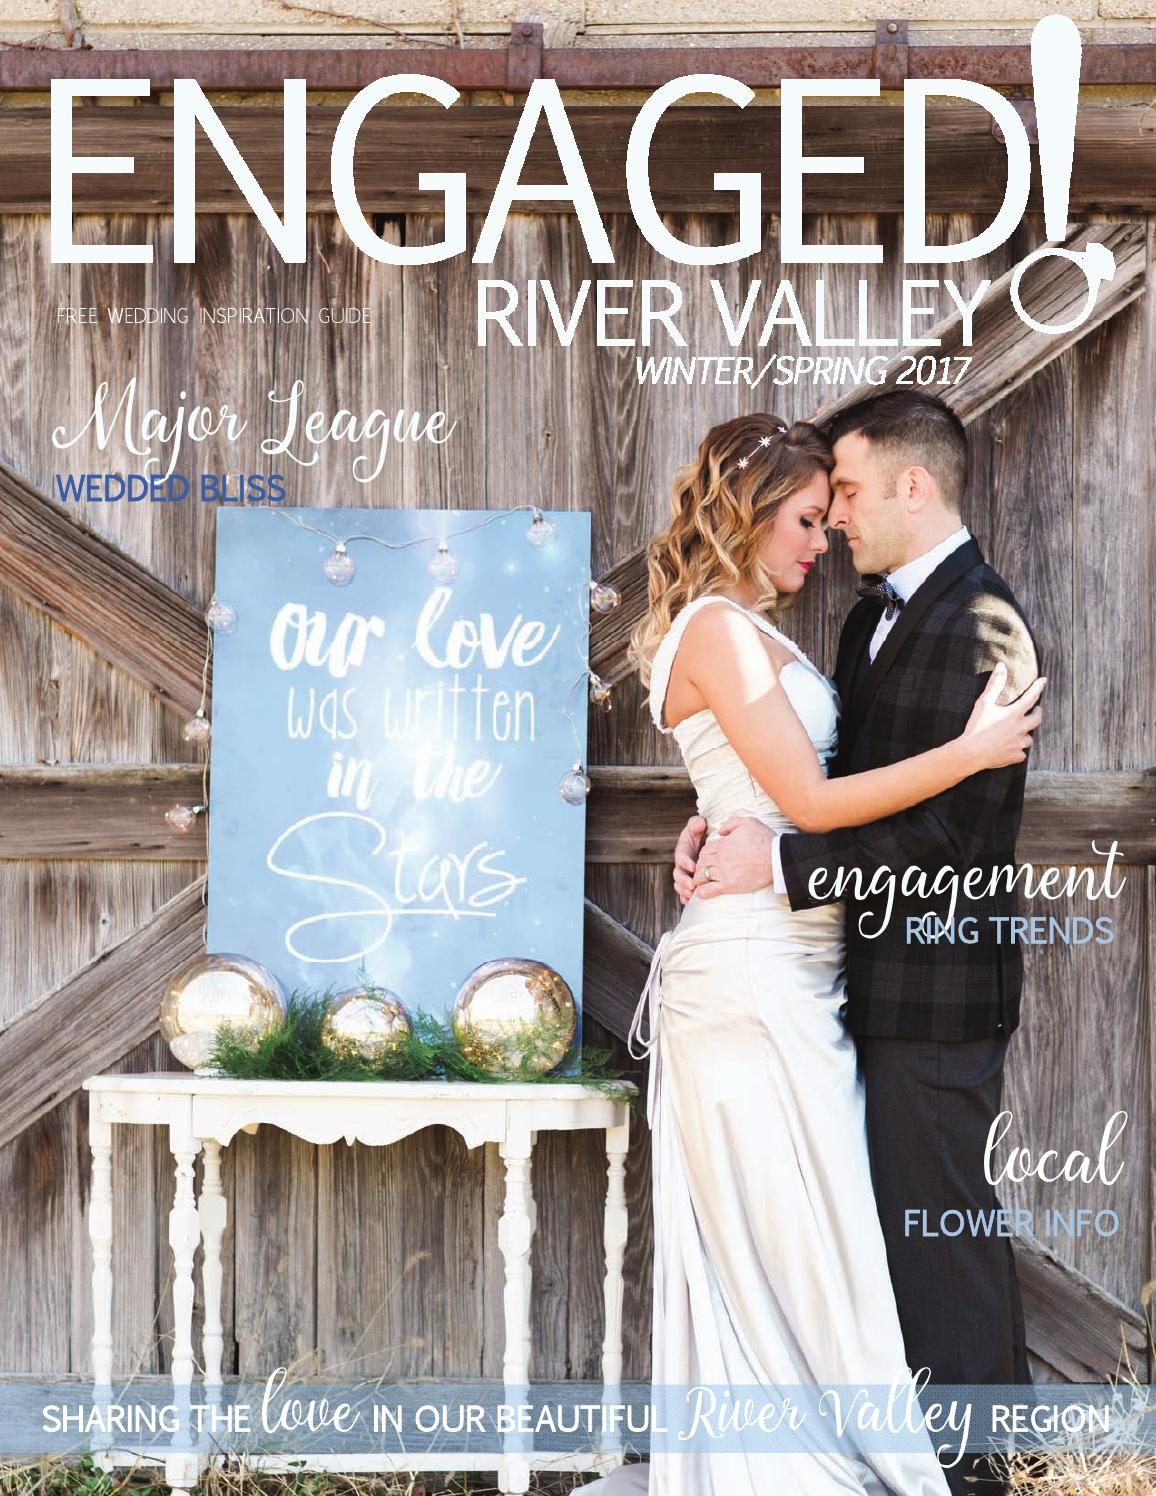 c007c7230fe3 ENGAGED! River Valley Winter/Spring 2017 by ENGAGED! RIVER VALLEY - issuu